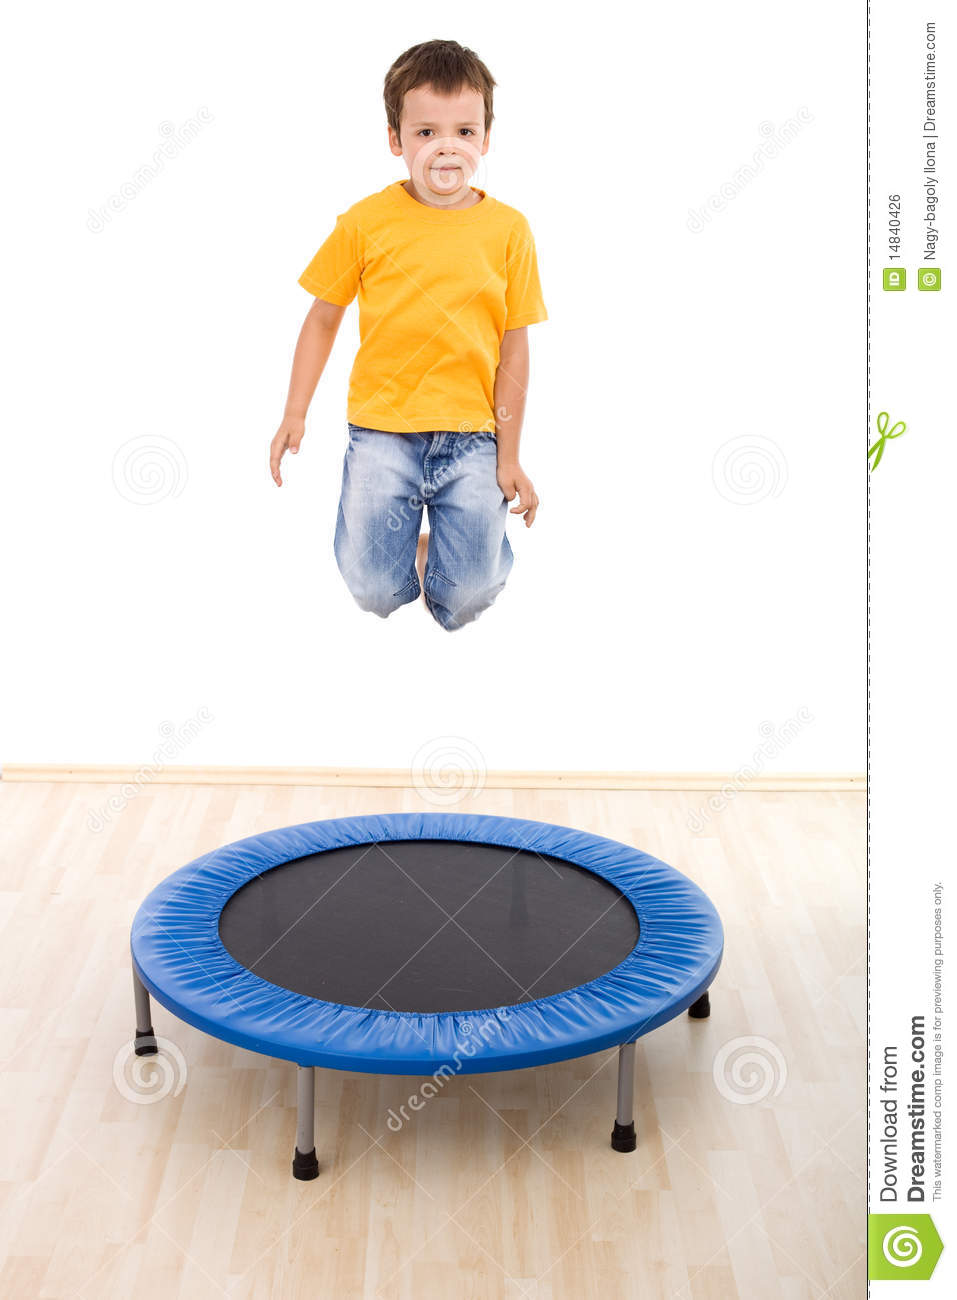 how to jump really high on a trampoline